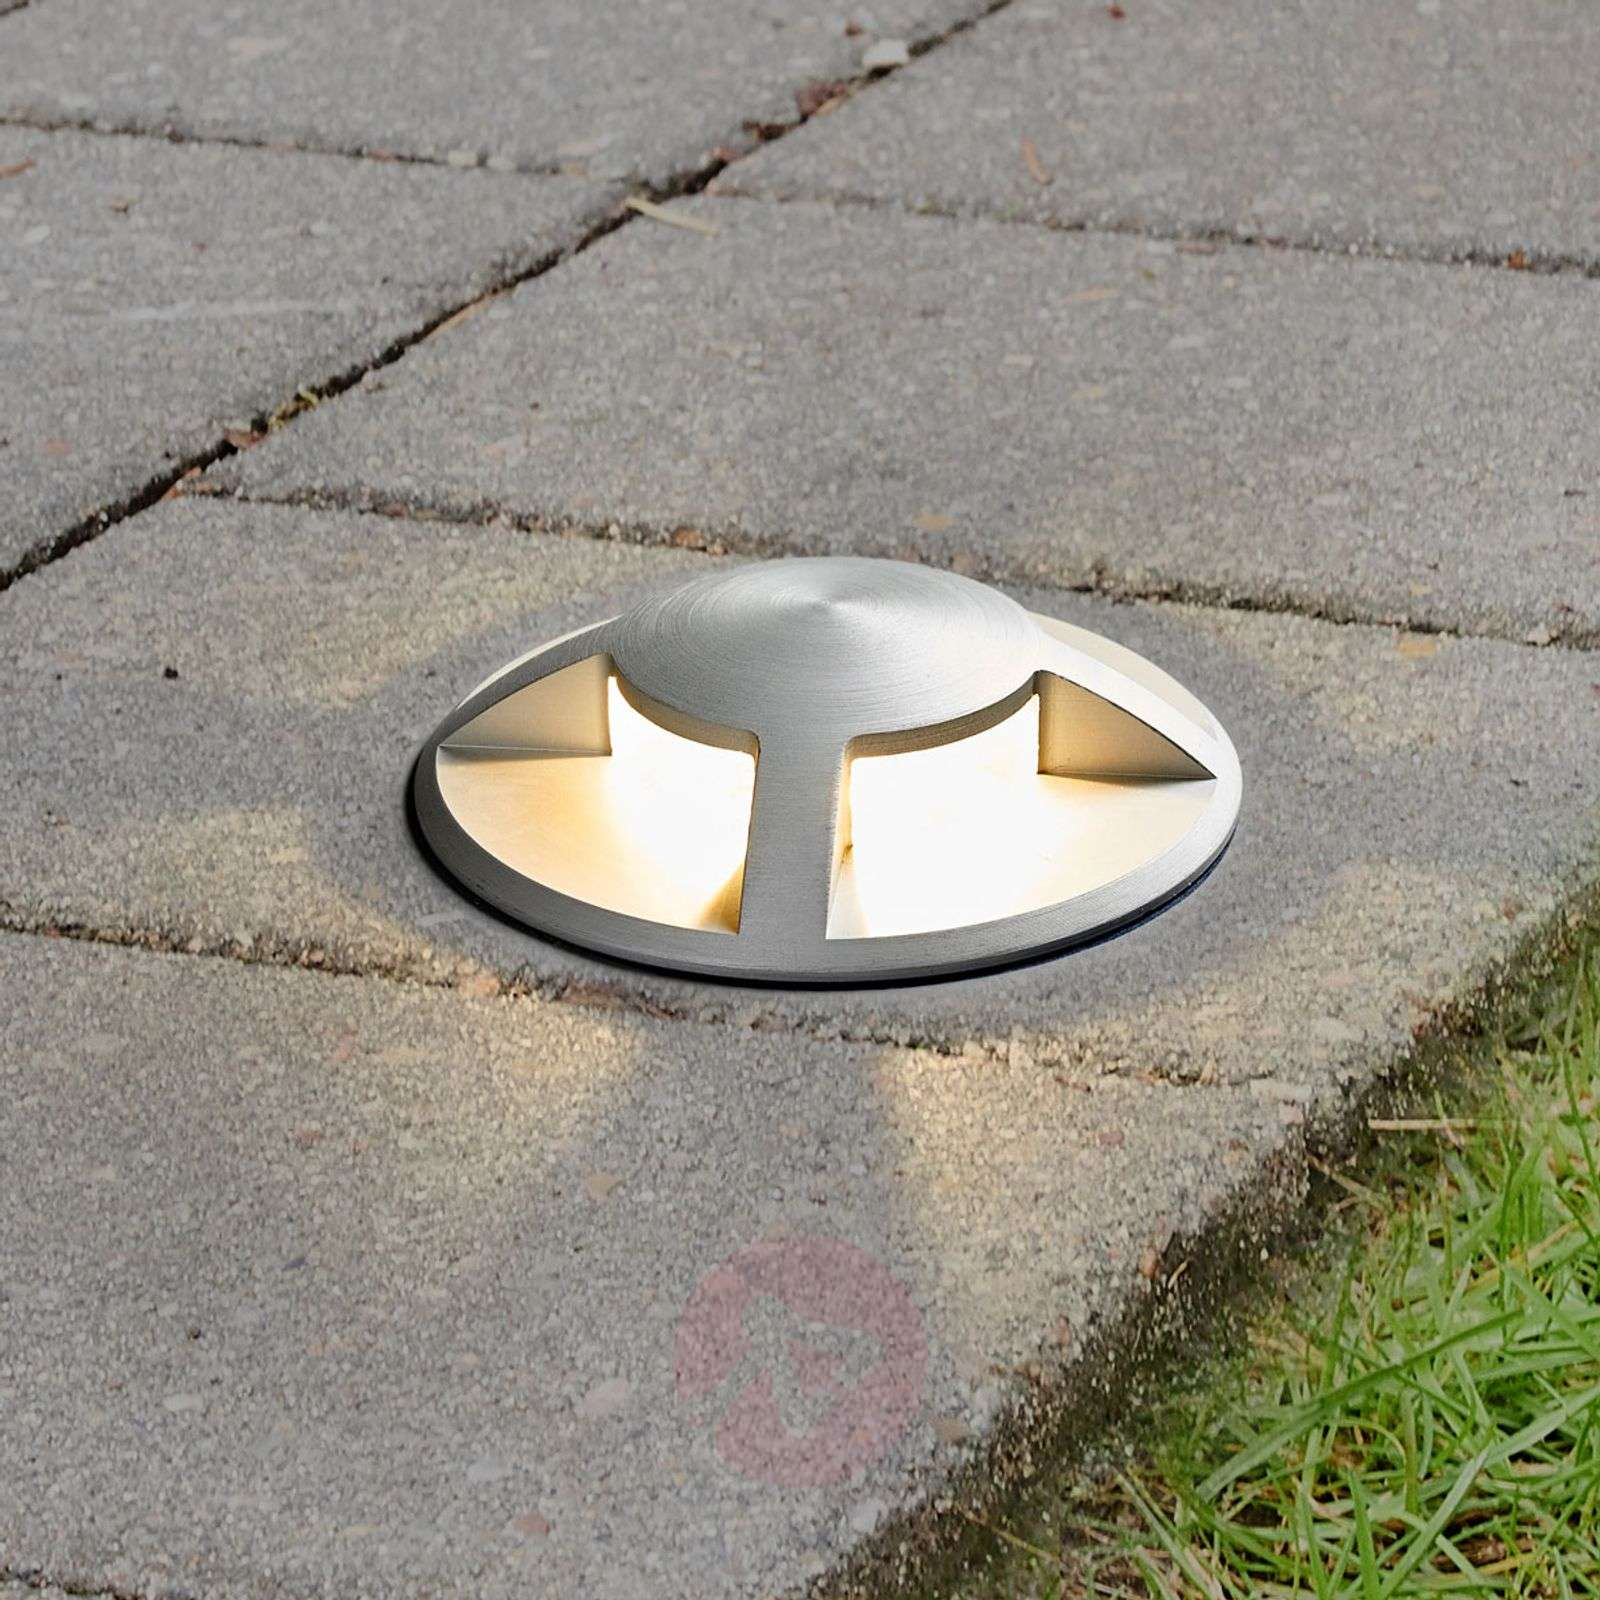 Spot encastrable dans le sol led anina aluminium for Spot encastrable exterieur sol led